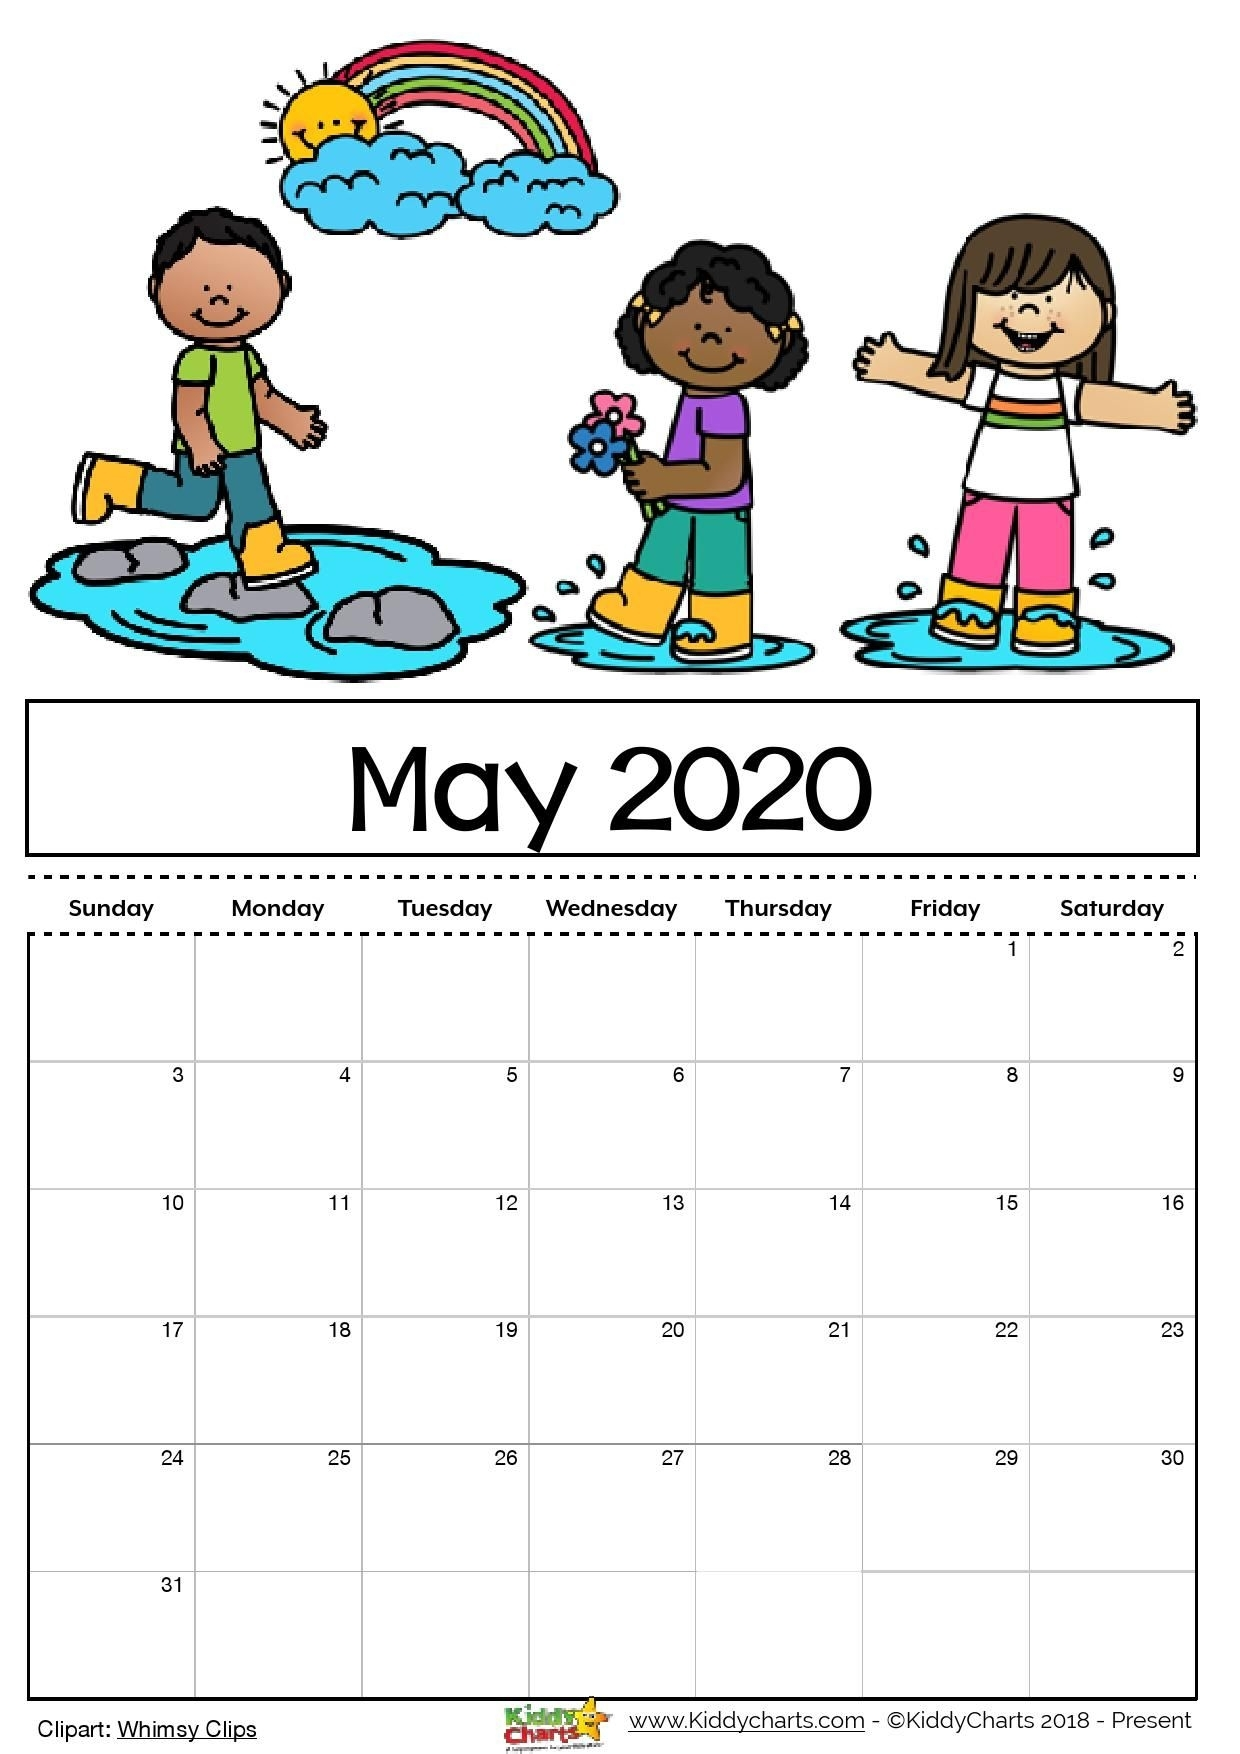 Check Out Our Free Editable 2020 Calendar Available For inside Free Printable Children Calendars 2020 That Children Can Draw On